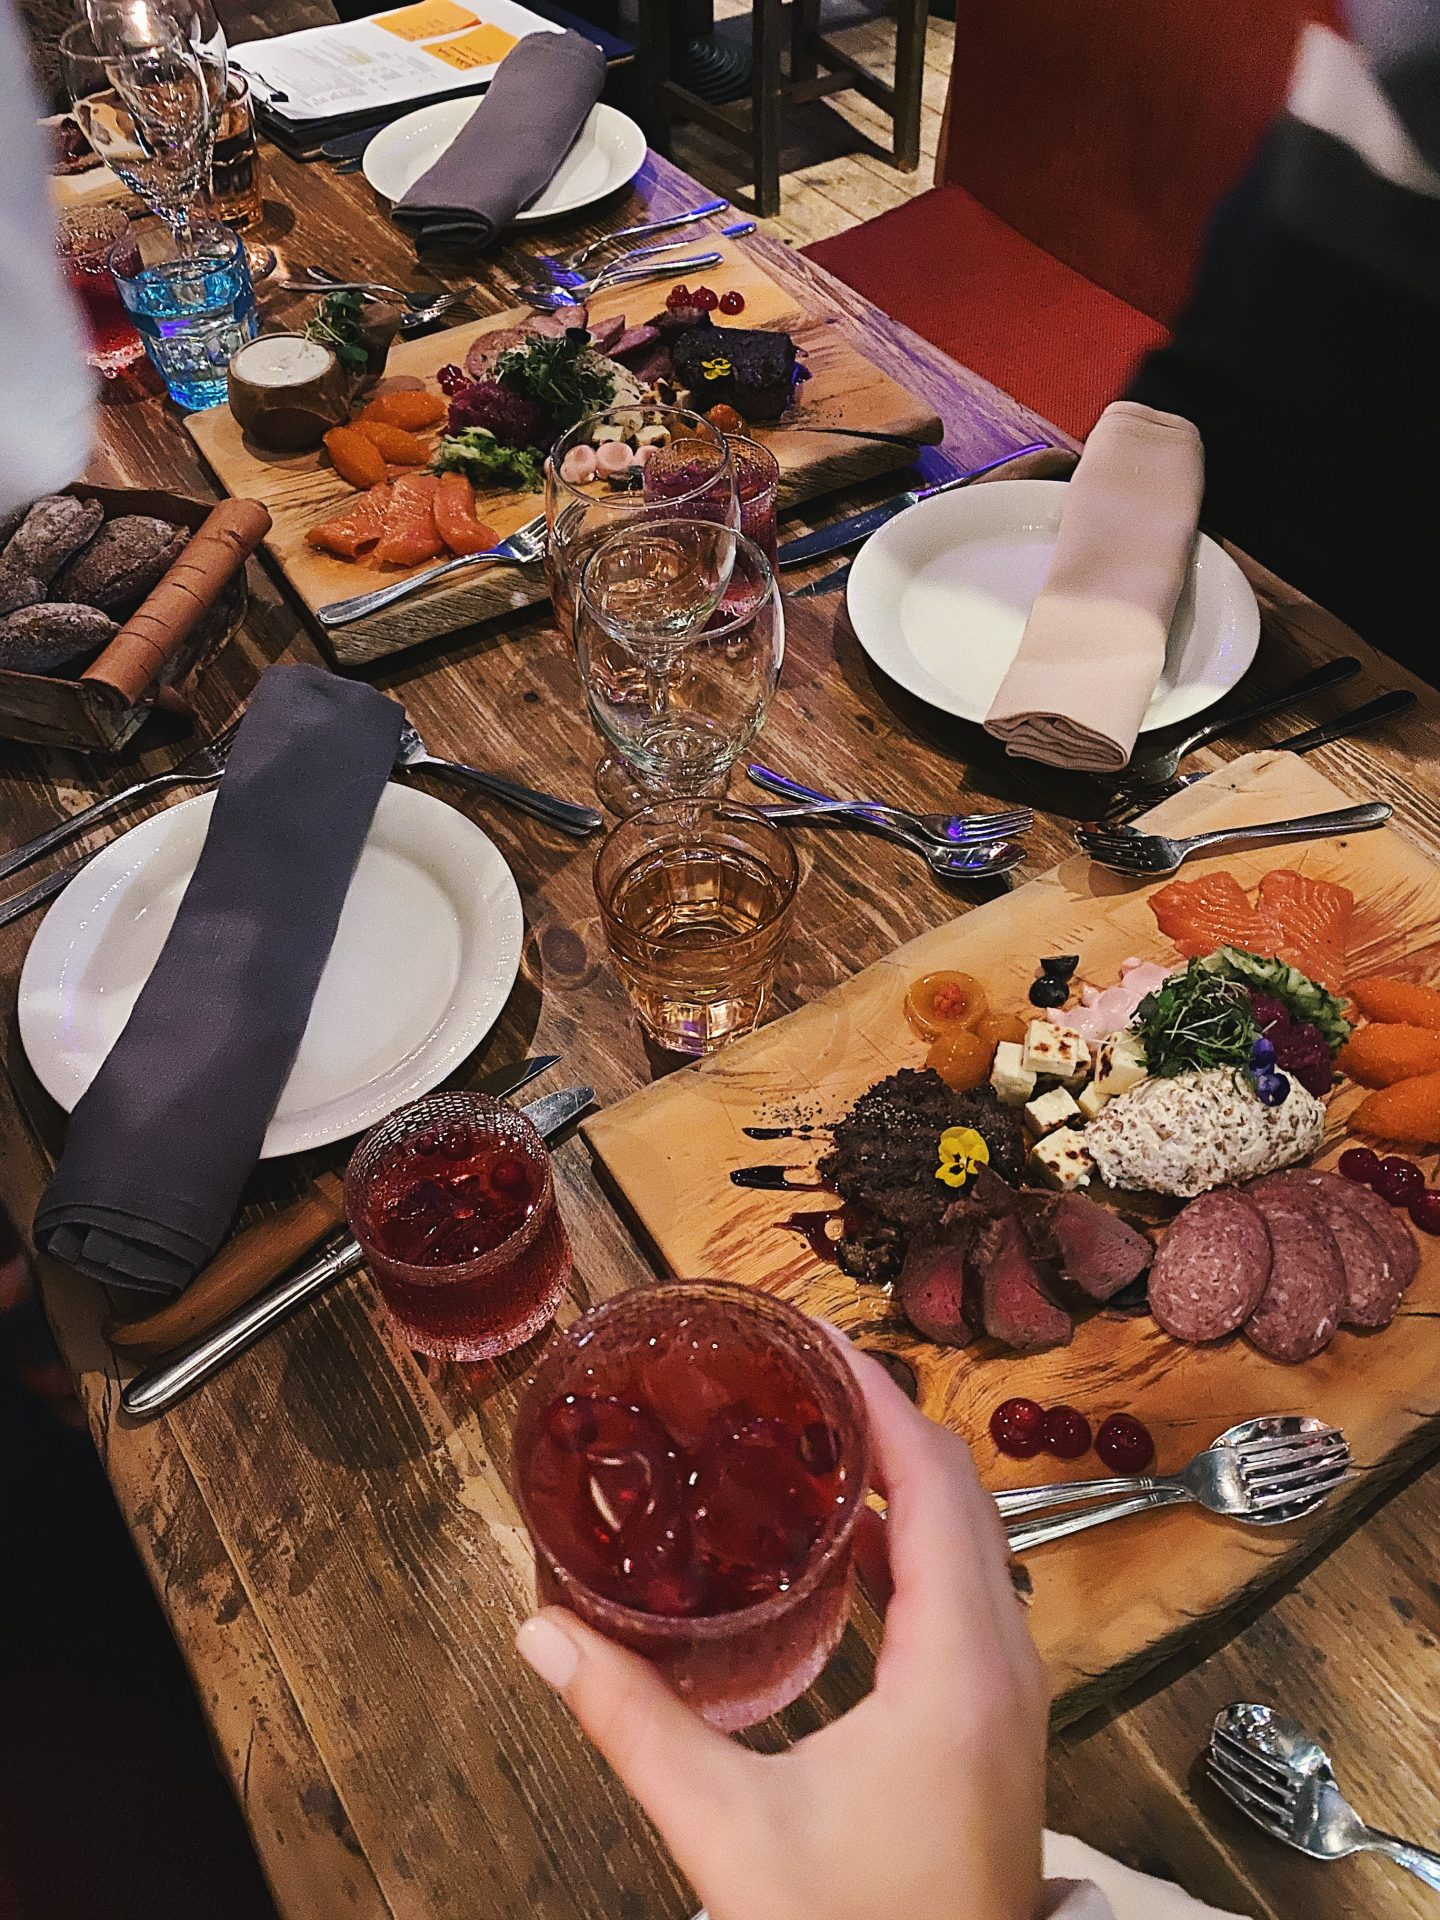 Travel guide and travel diary to Lapland, Finland and Rovaniemi, Finland with Nili Restaurant